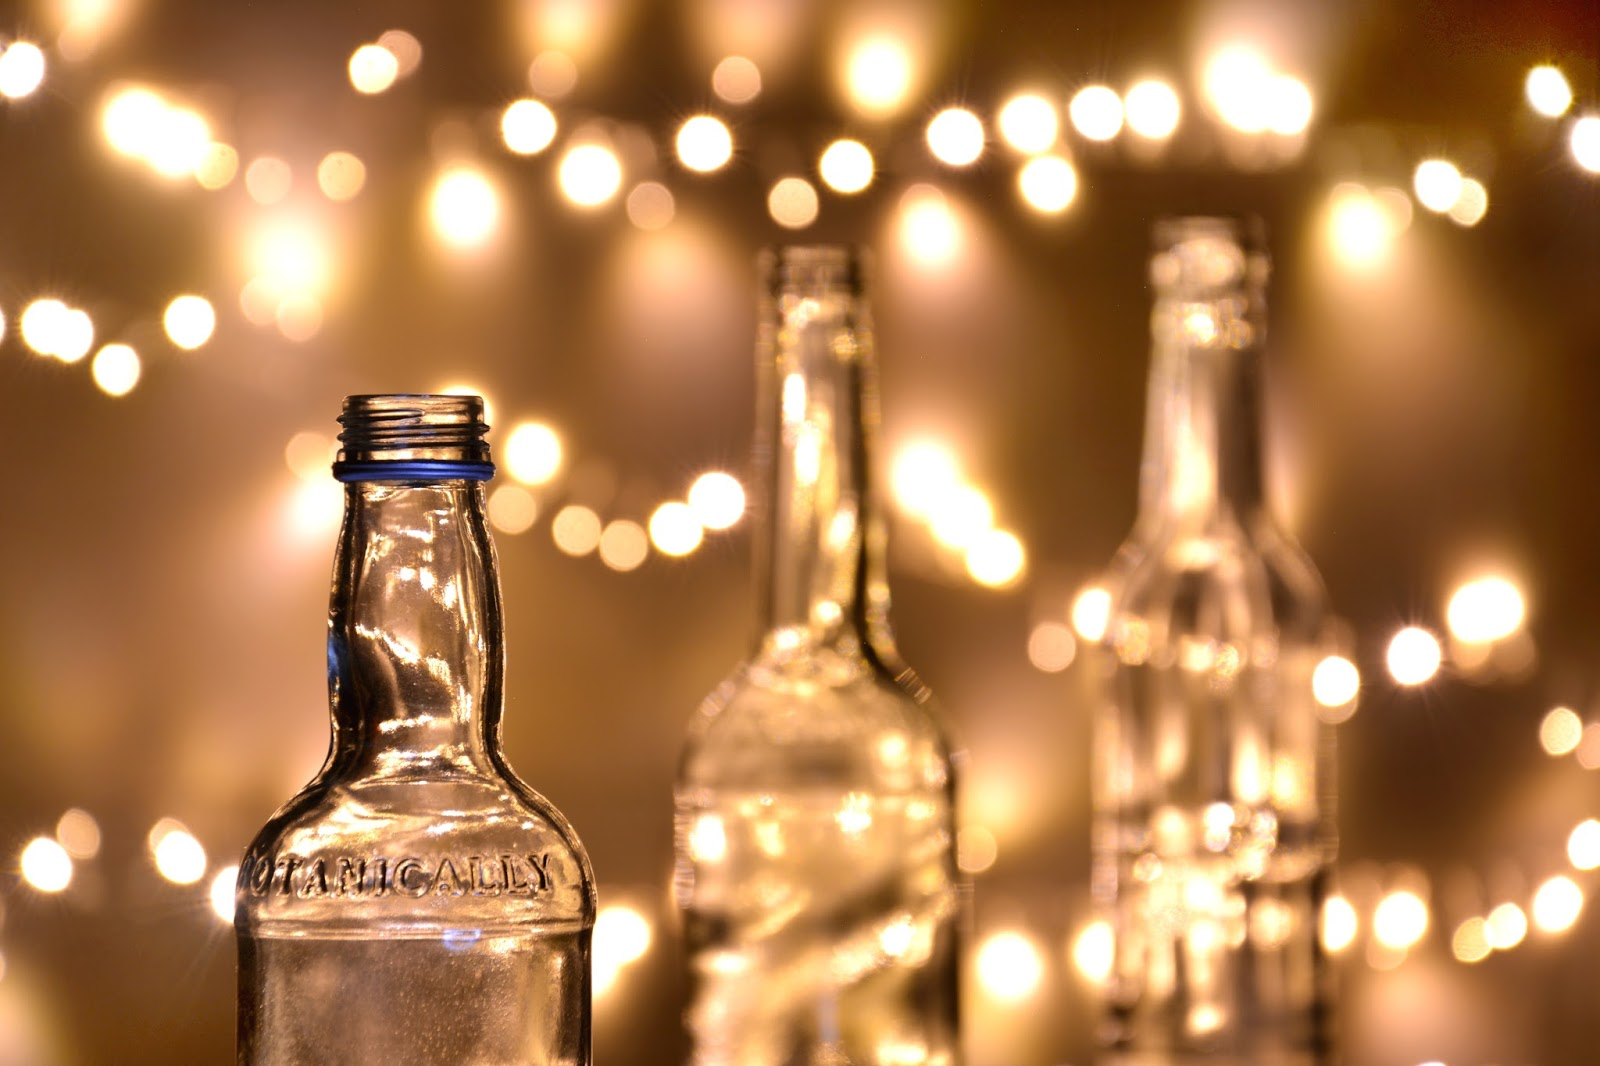 Empty Bottles in front of bokeh